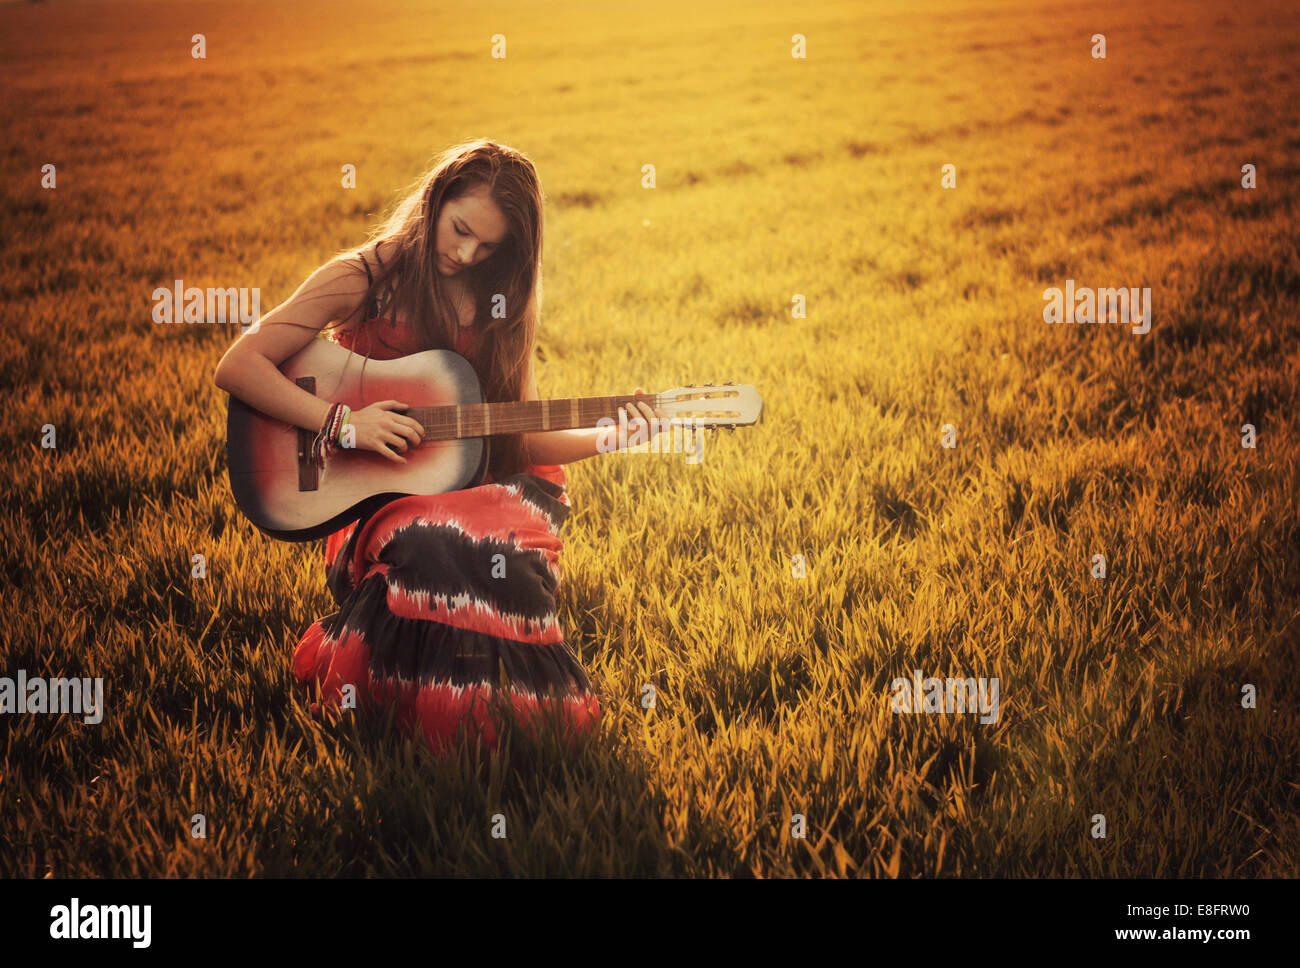 Girl sitting in field playing guitar - Stock Image